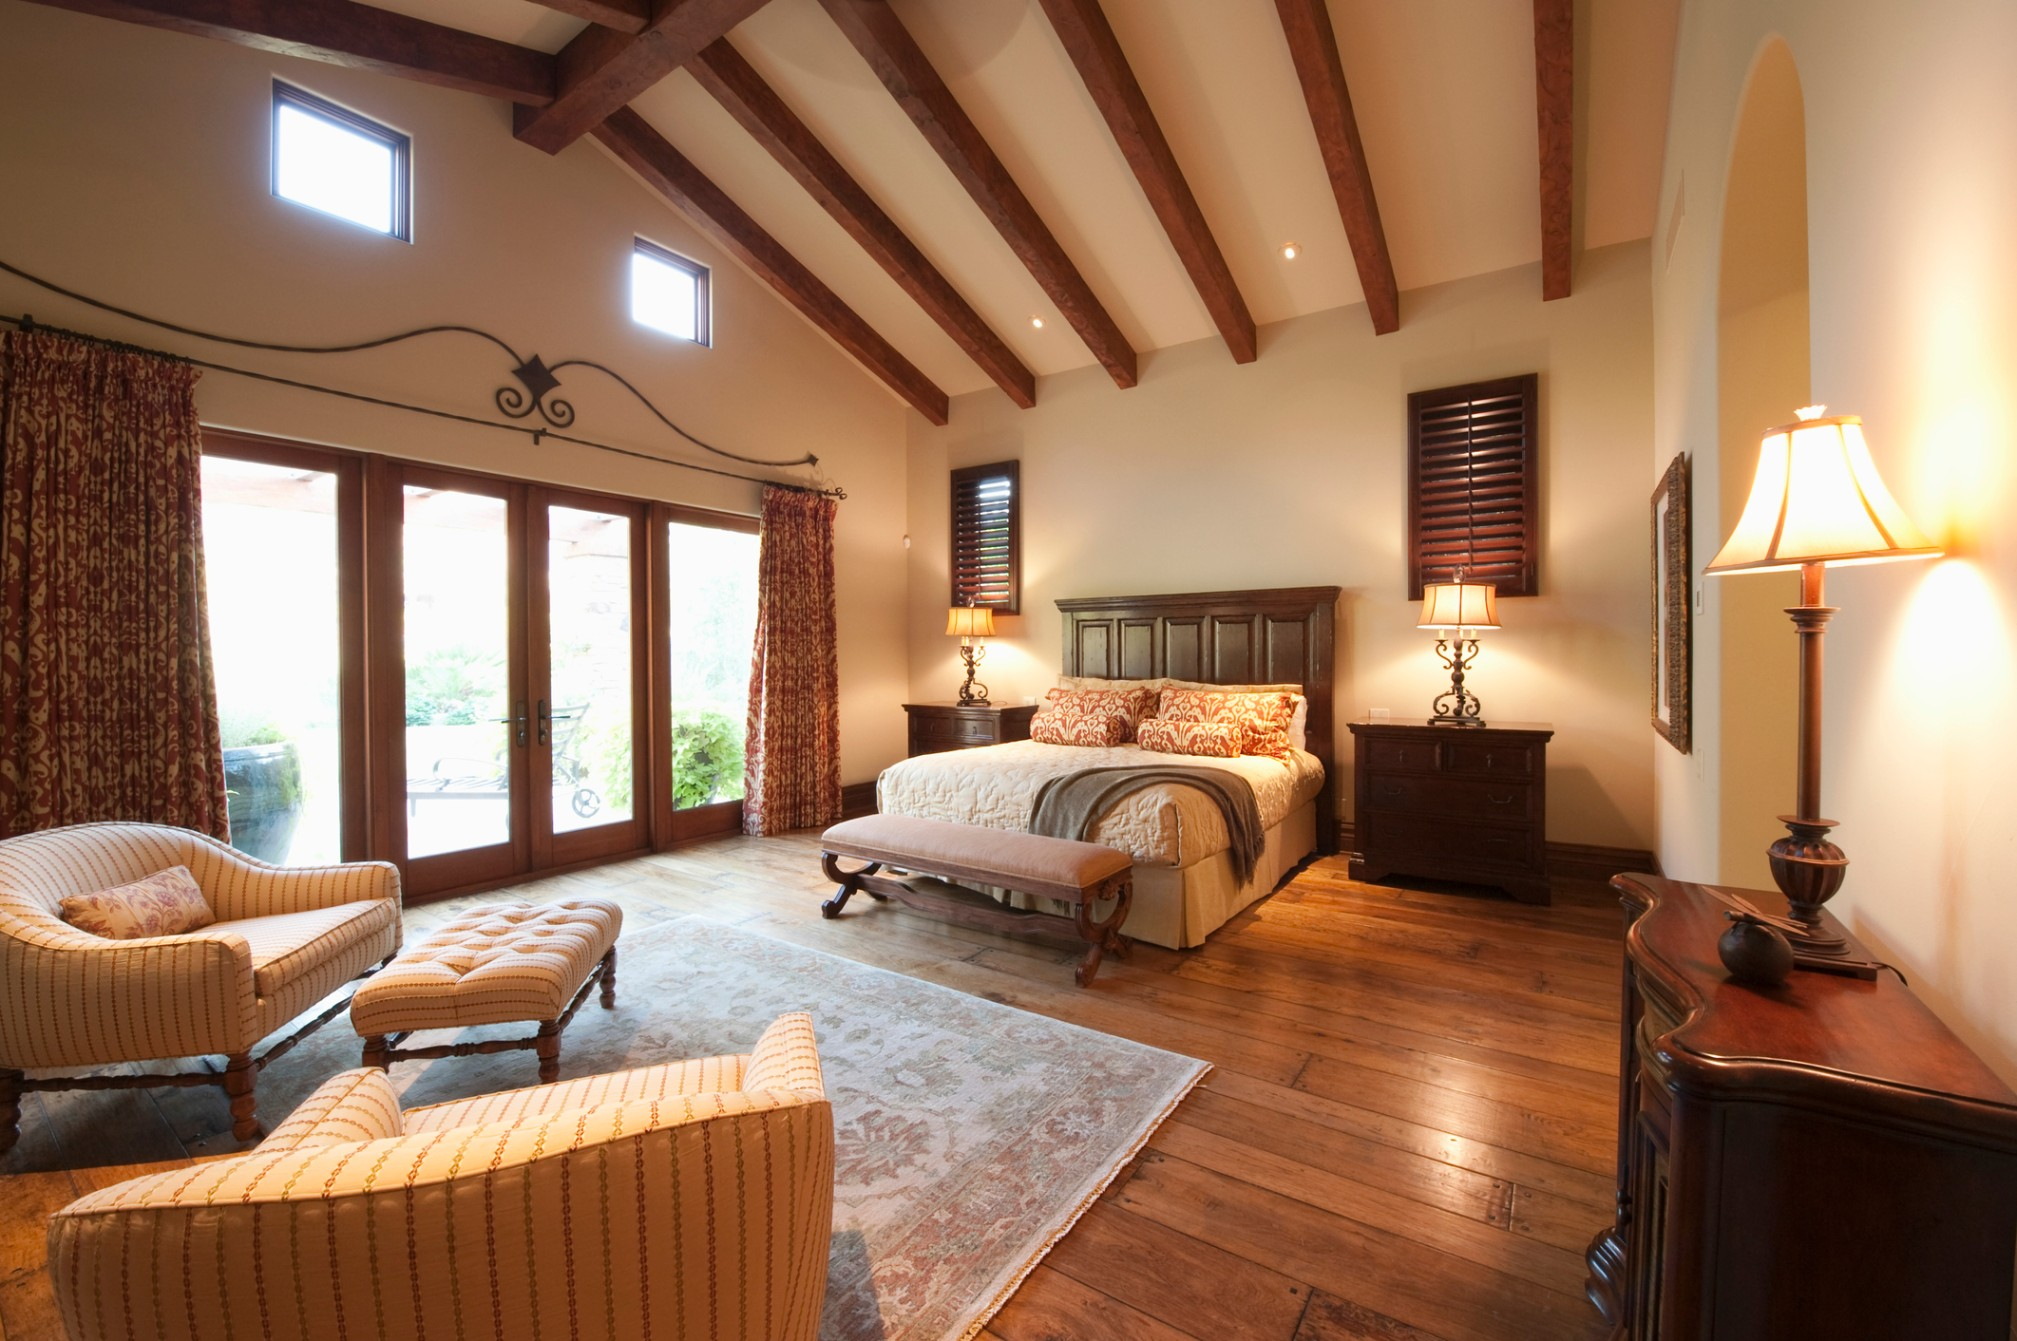 Finding Your Perfect Ceiling Design